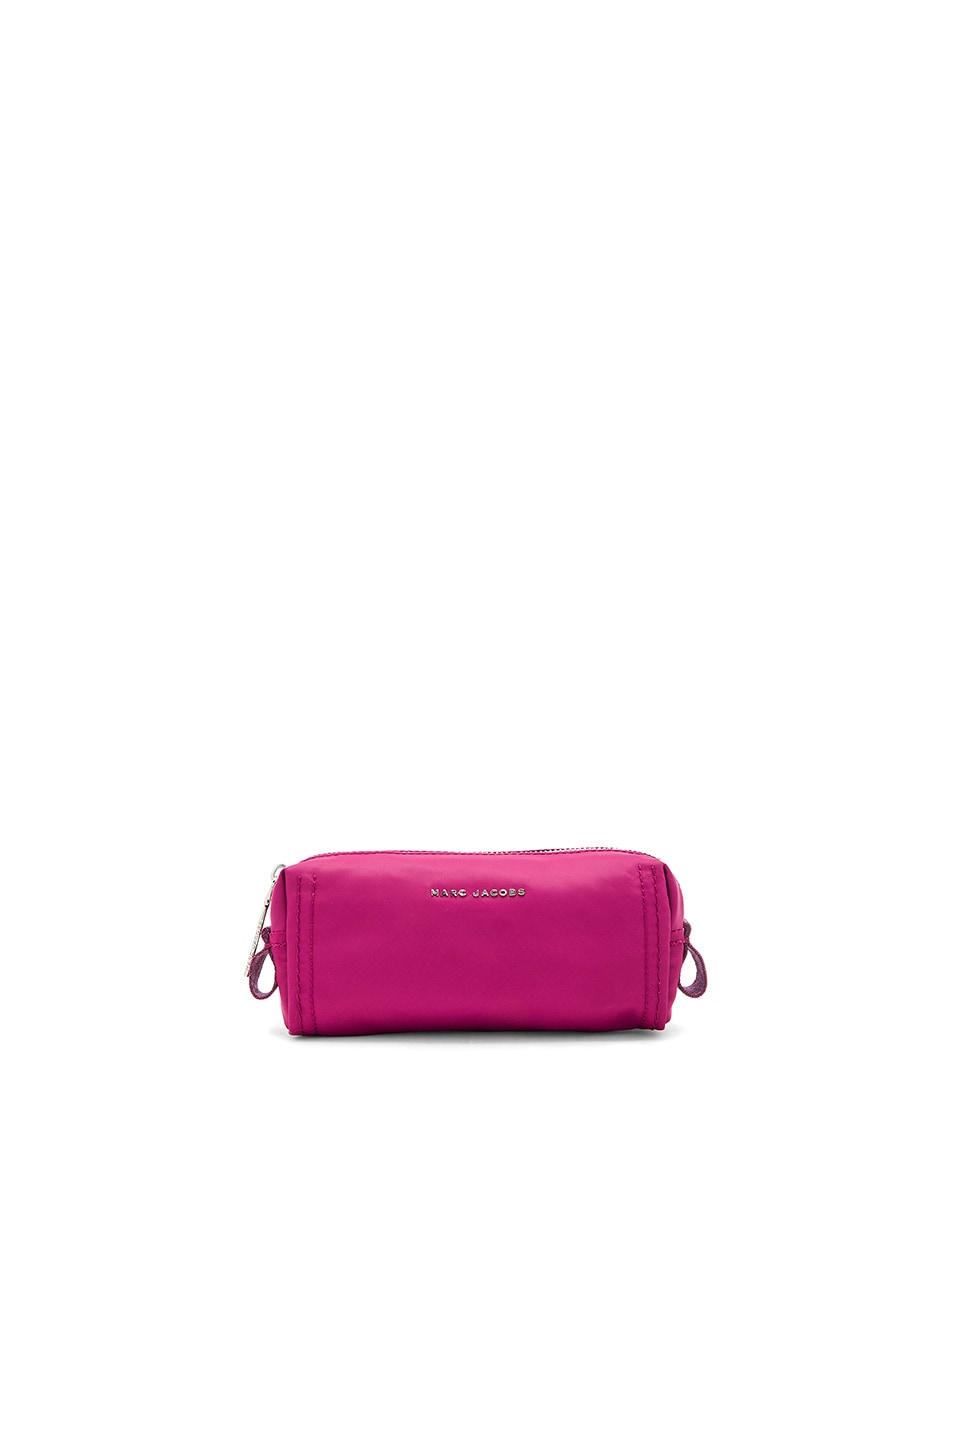 Easy Skinny Cosmetic Bag by Marc Jacobs